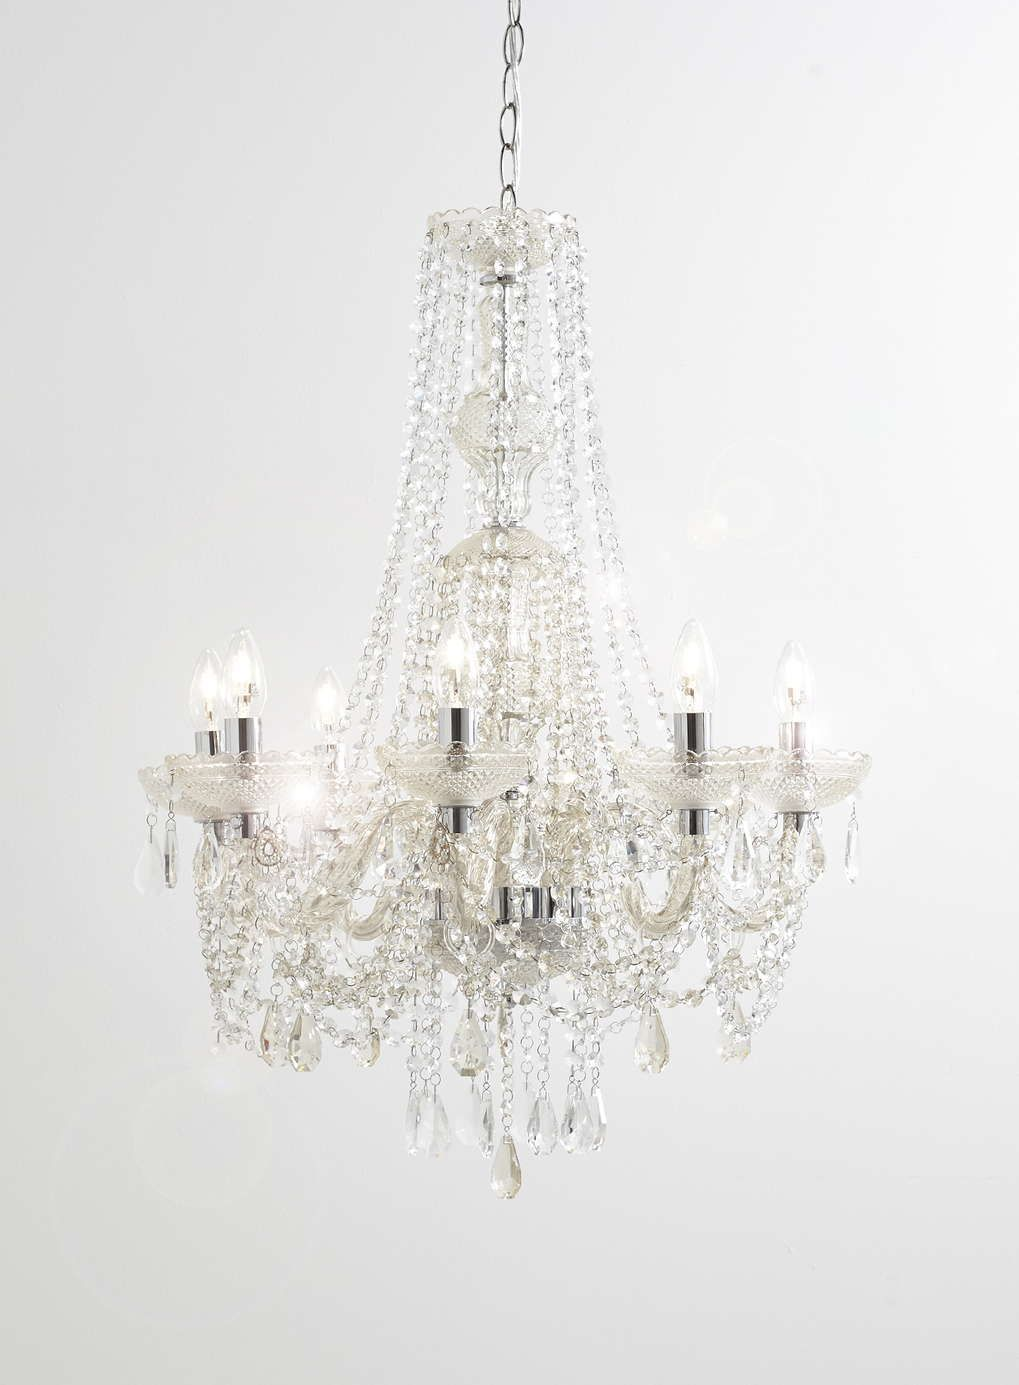 Alexandria Chandelier Bhs 350 Dimensions Height With Ceiling Chain H160cm